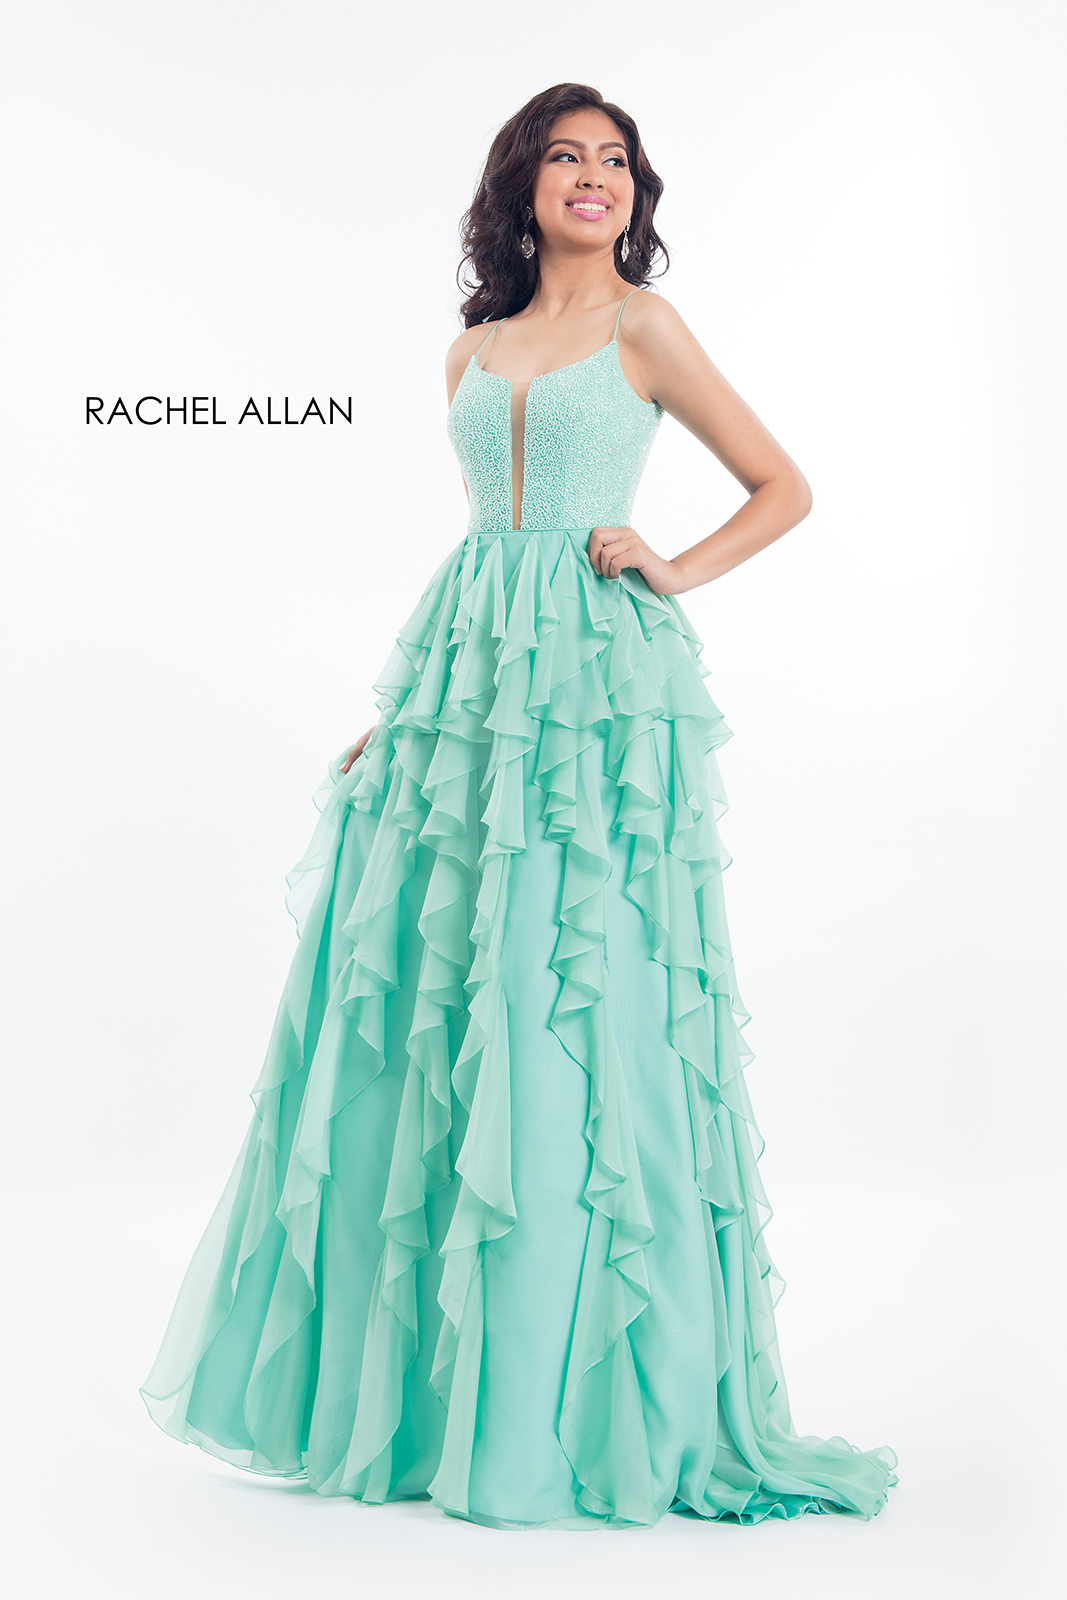 Scoop Neck Fit & Flare Prom Dresses in Mint Color